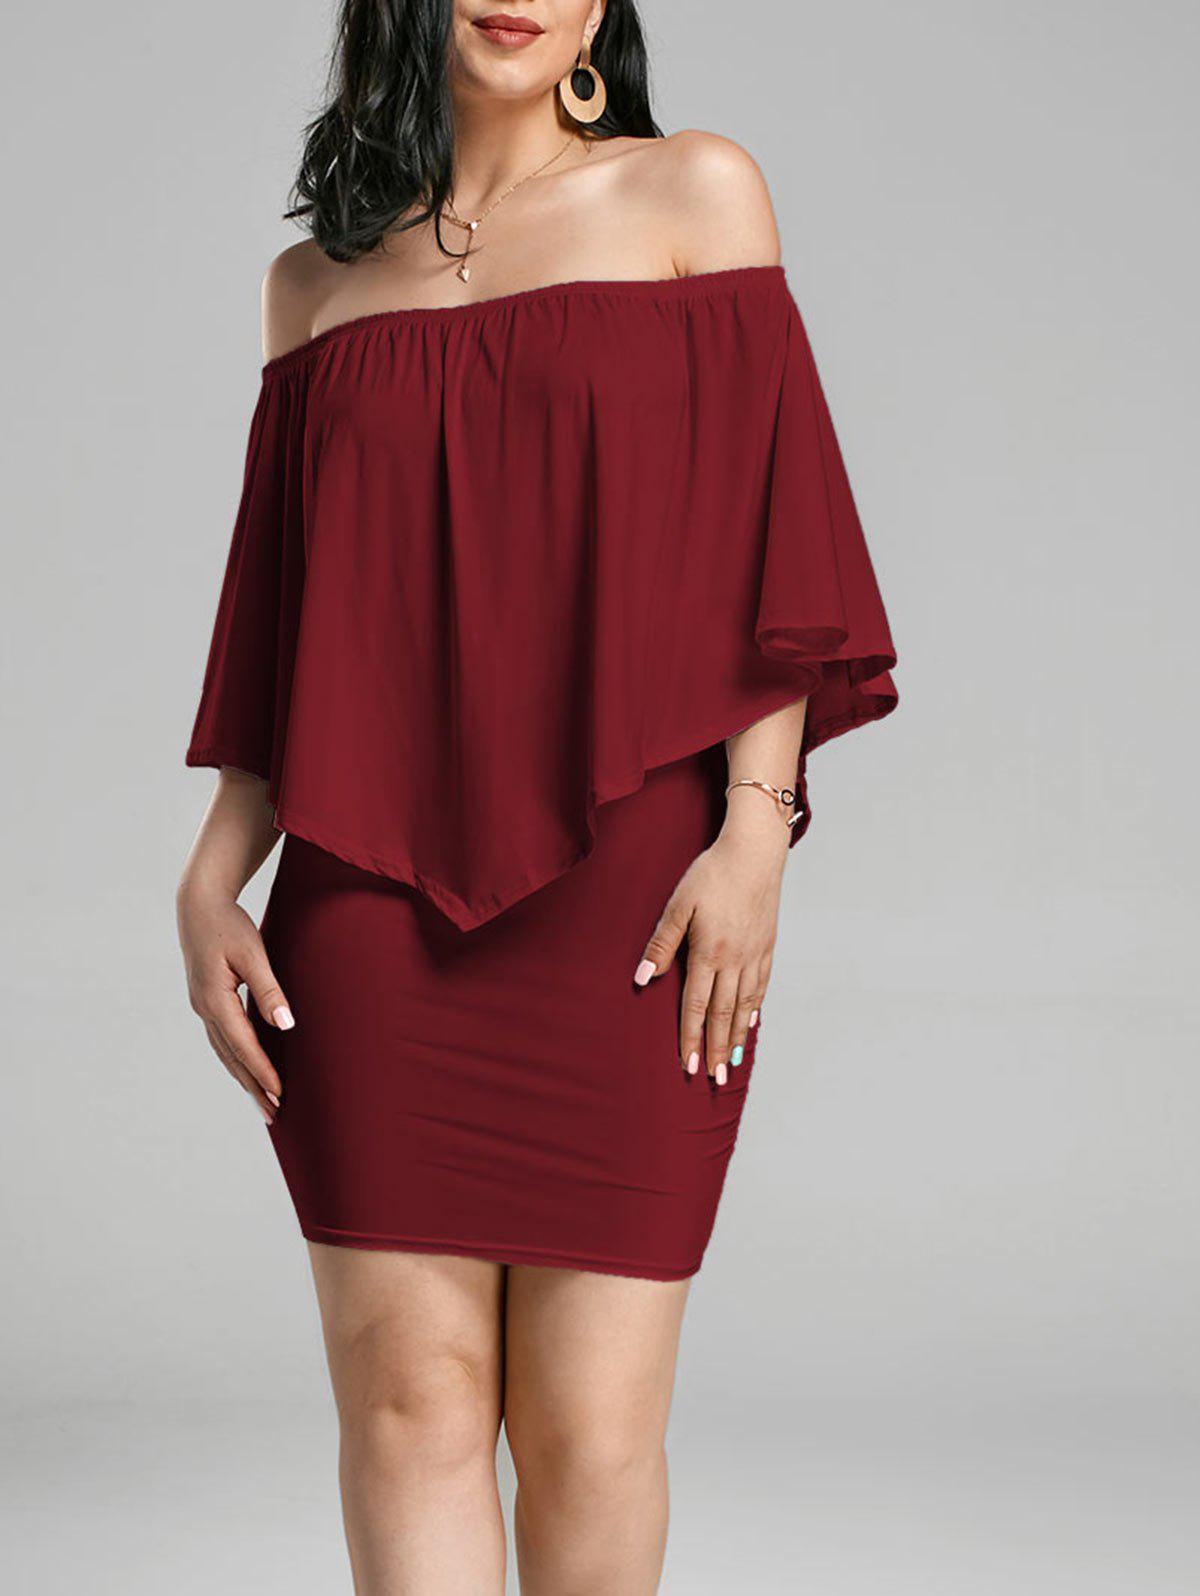 Off The Shoulder Poncho Bodycon Popover DressWOMEN<br><br>Size: XL; Color: WINE RED; Style: Brief; Material: Polyester,Spandex; Silhouette: Bodycon; Dress Type: Popover Dress; Dresses Length: Mini; Neckline: Off The Shoulder; Sleeve Length: 3/4 Length Sleeves; Waist: Natural; Pattern Type: Solid Color; Elasticity: Elastic; With Belt: No; Season: Fall,Spring,Summer; Weight: 0.3200kg; Package Contents: 1 x Dress;